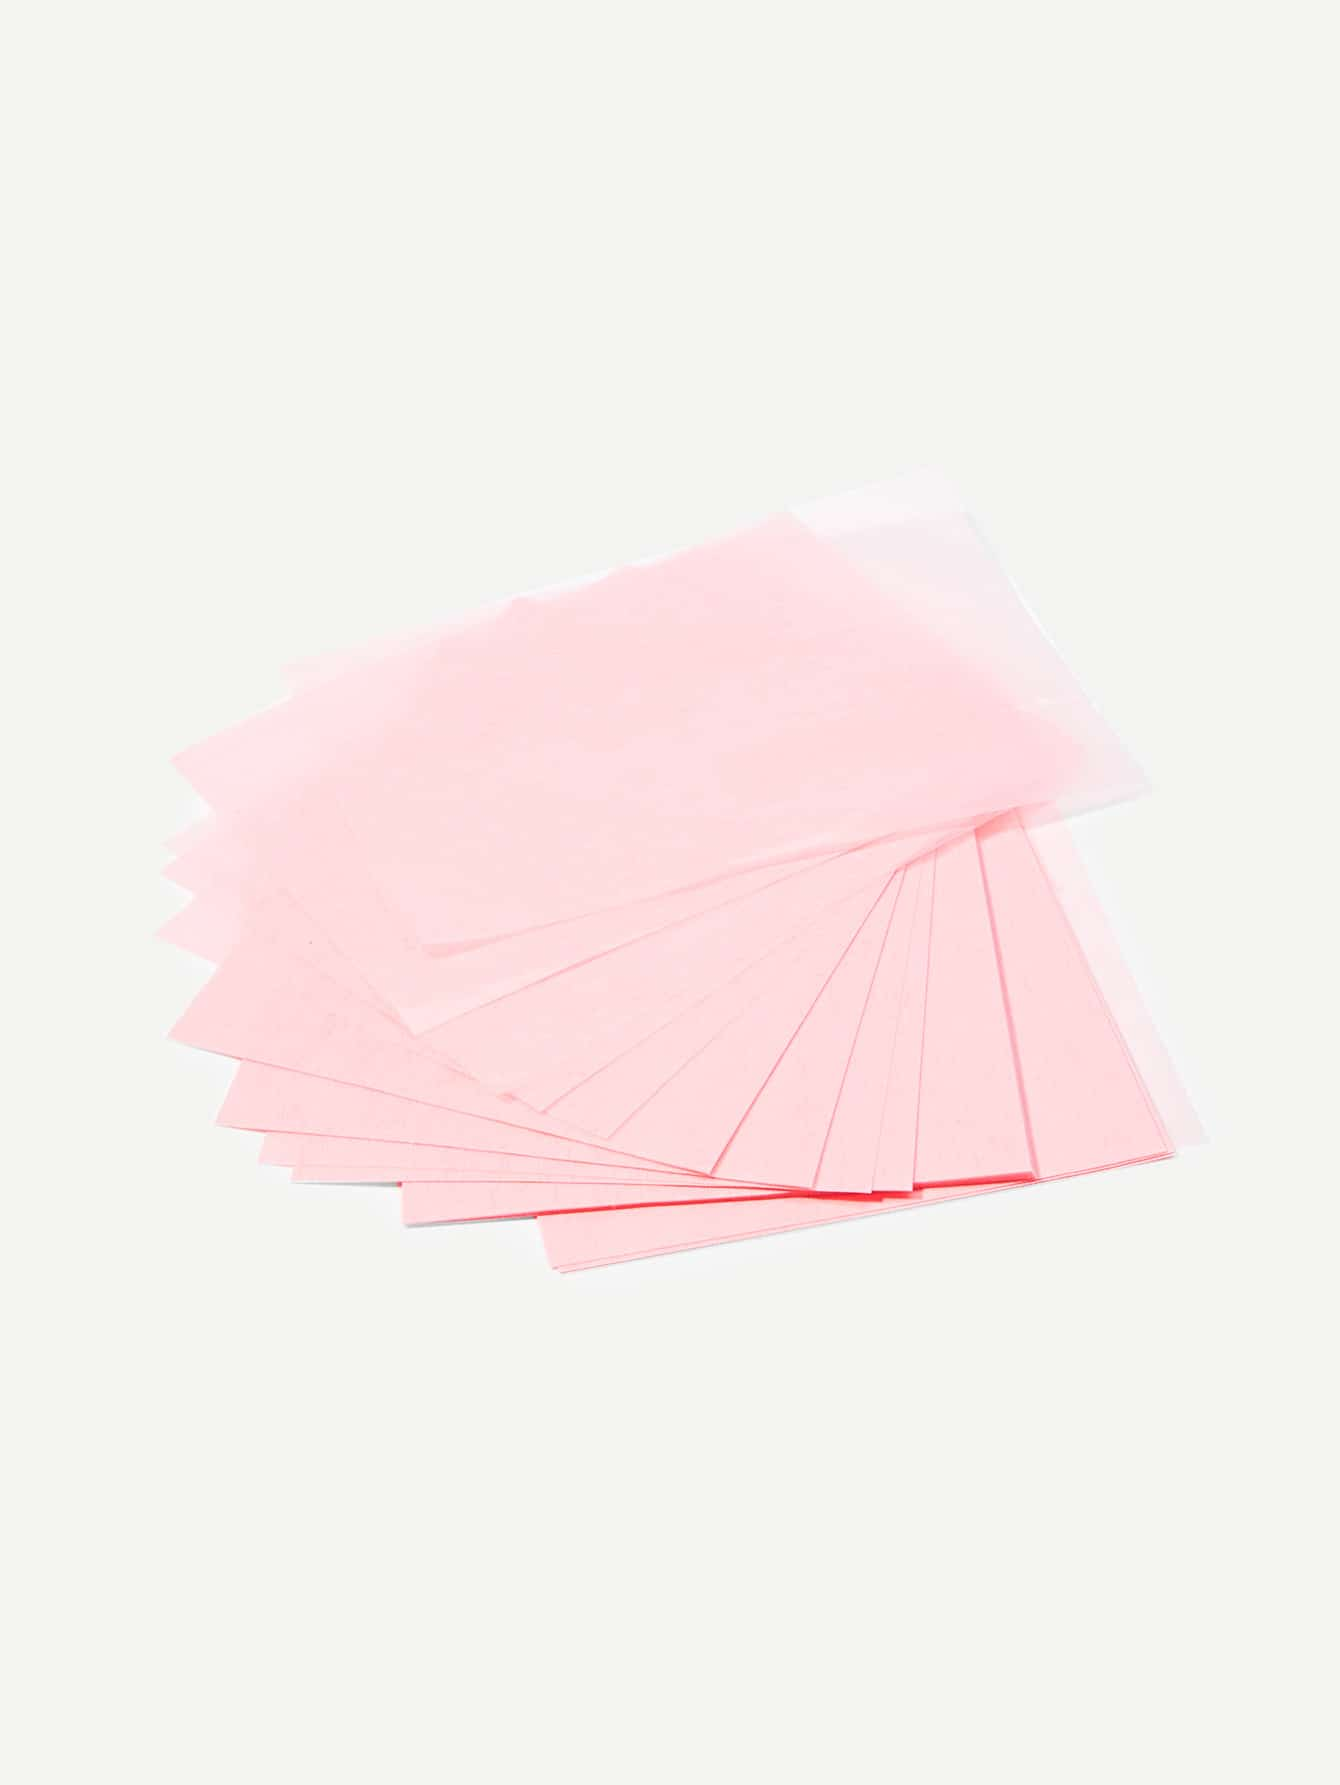 Oil Absorbing Paper 100sheets water absorbing oil absorbing cleaning cloth